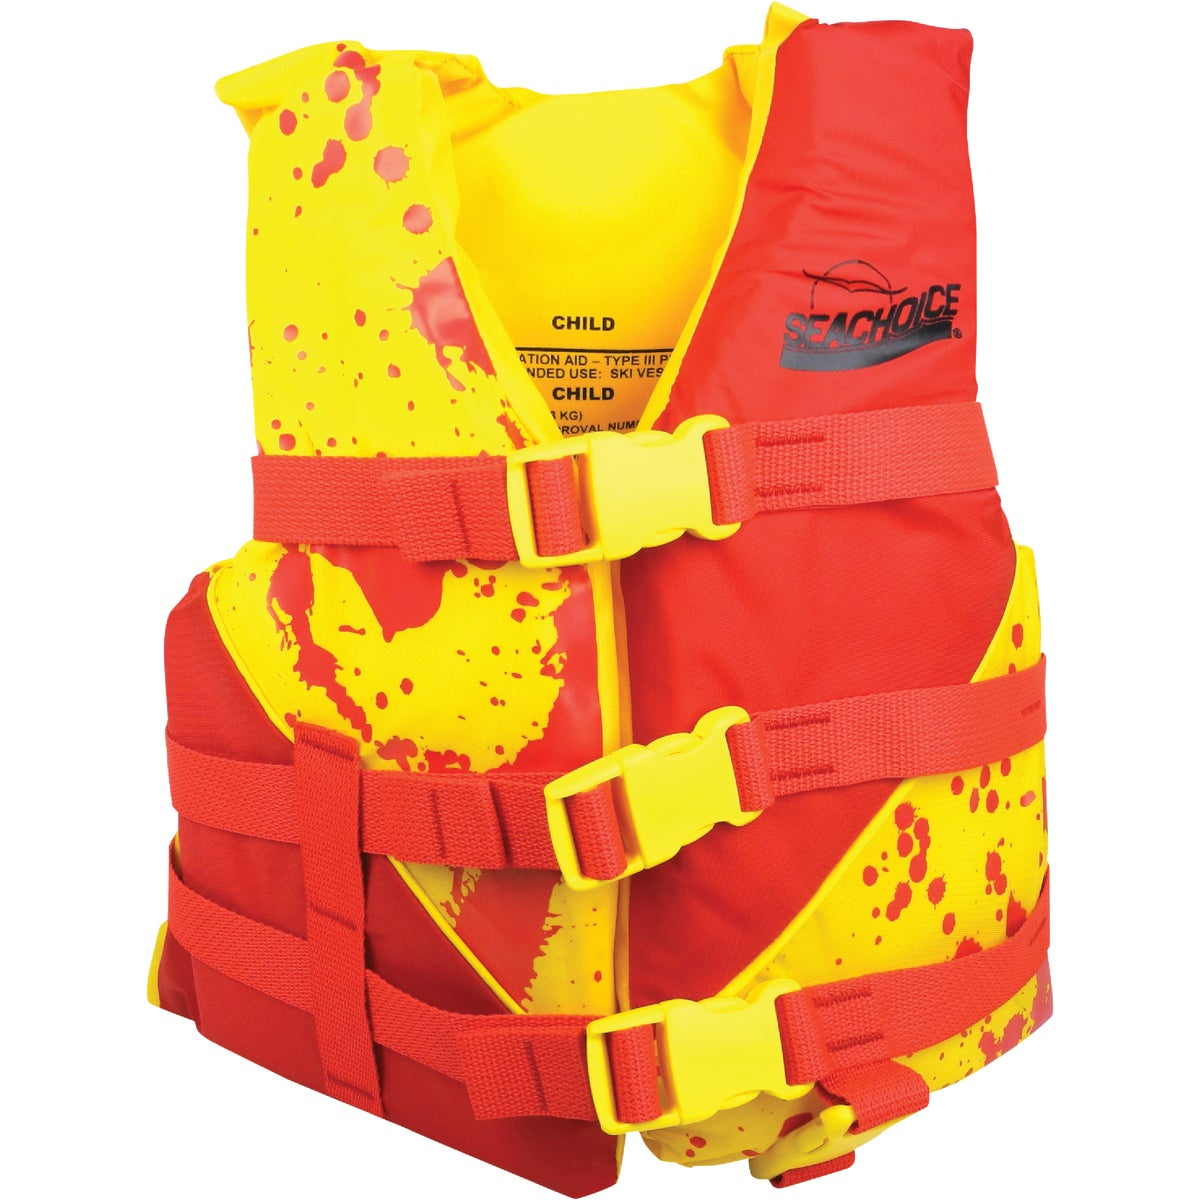 30-50LB CHILD VEST - 86130 by Seachoice Prod